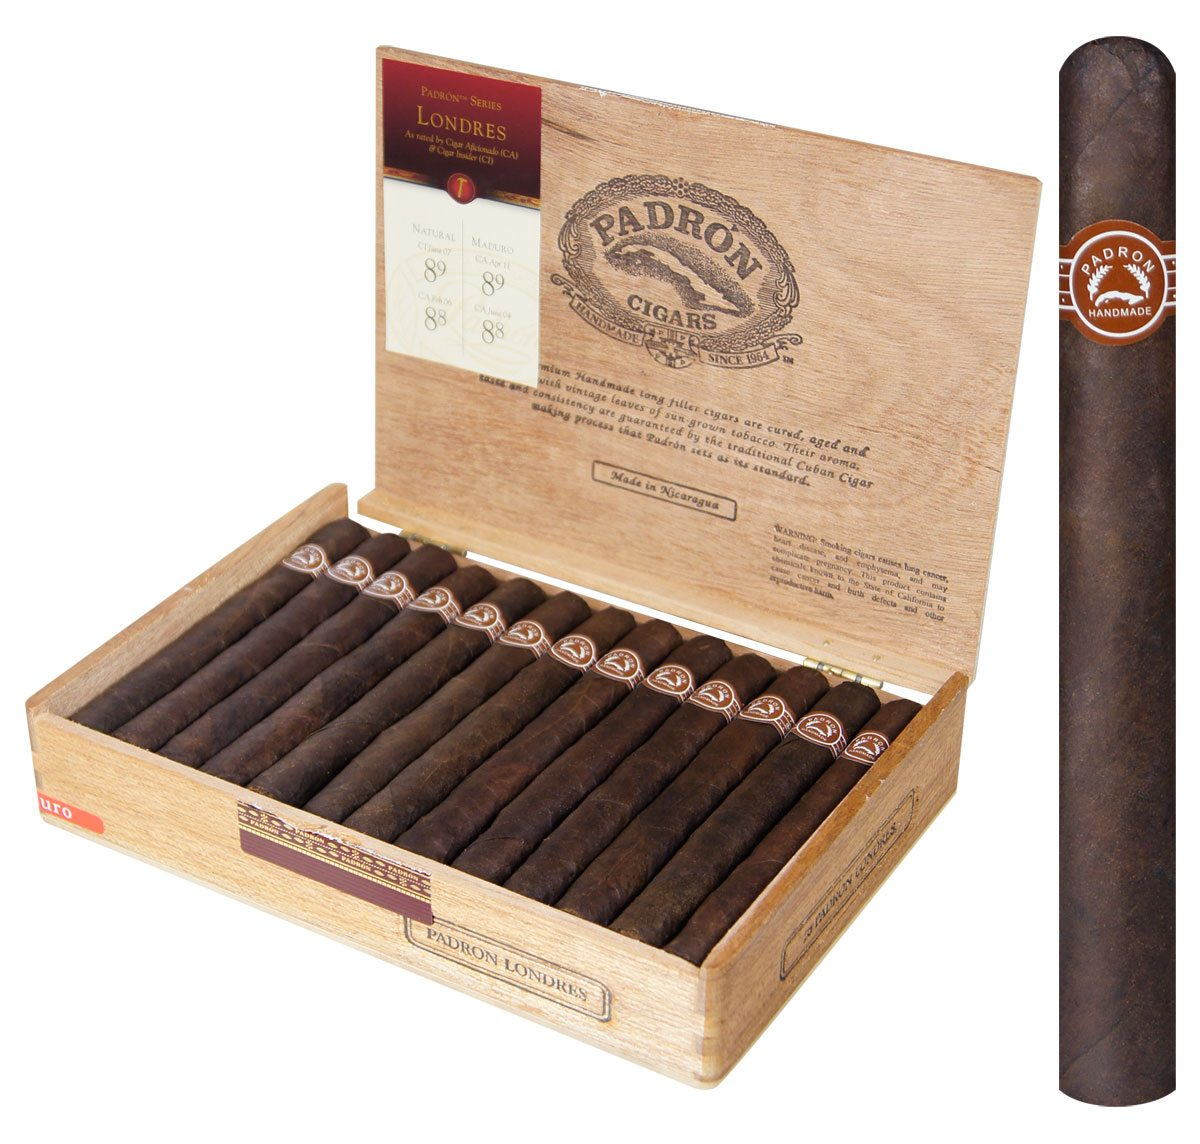 Blind Cigar Review: Padron | Londres Maduro